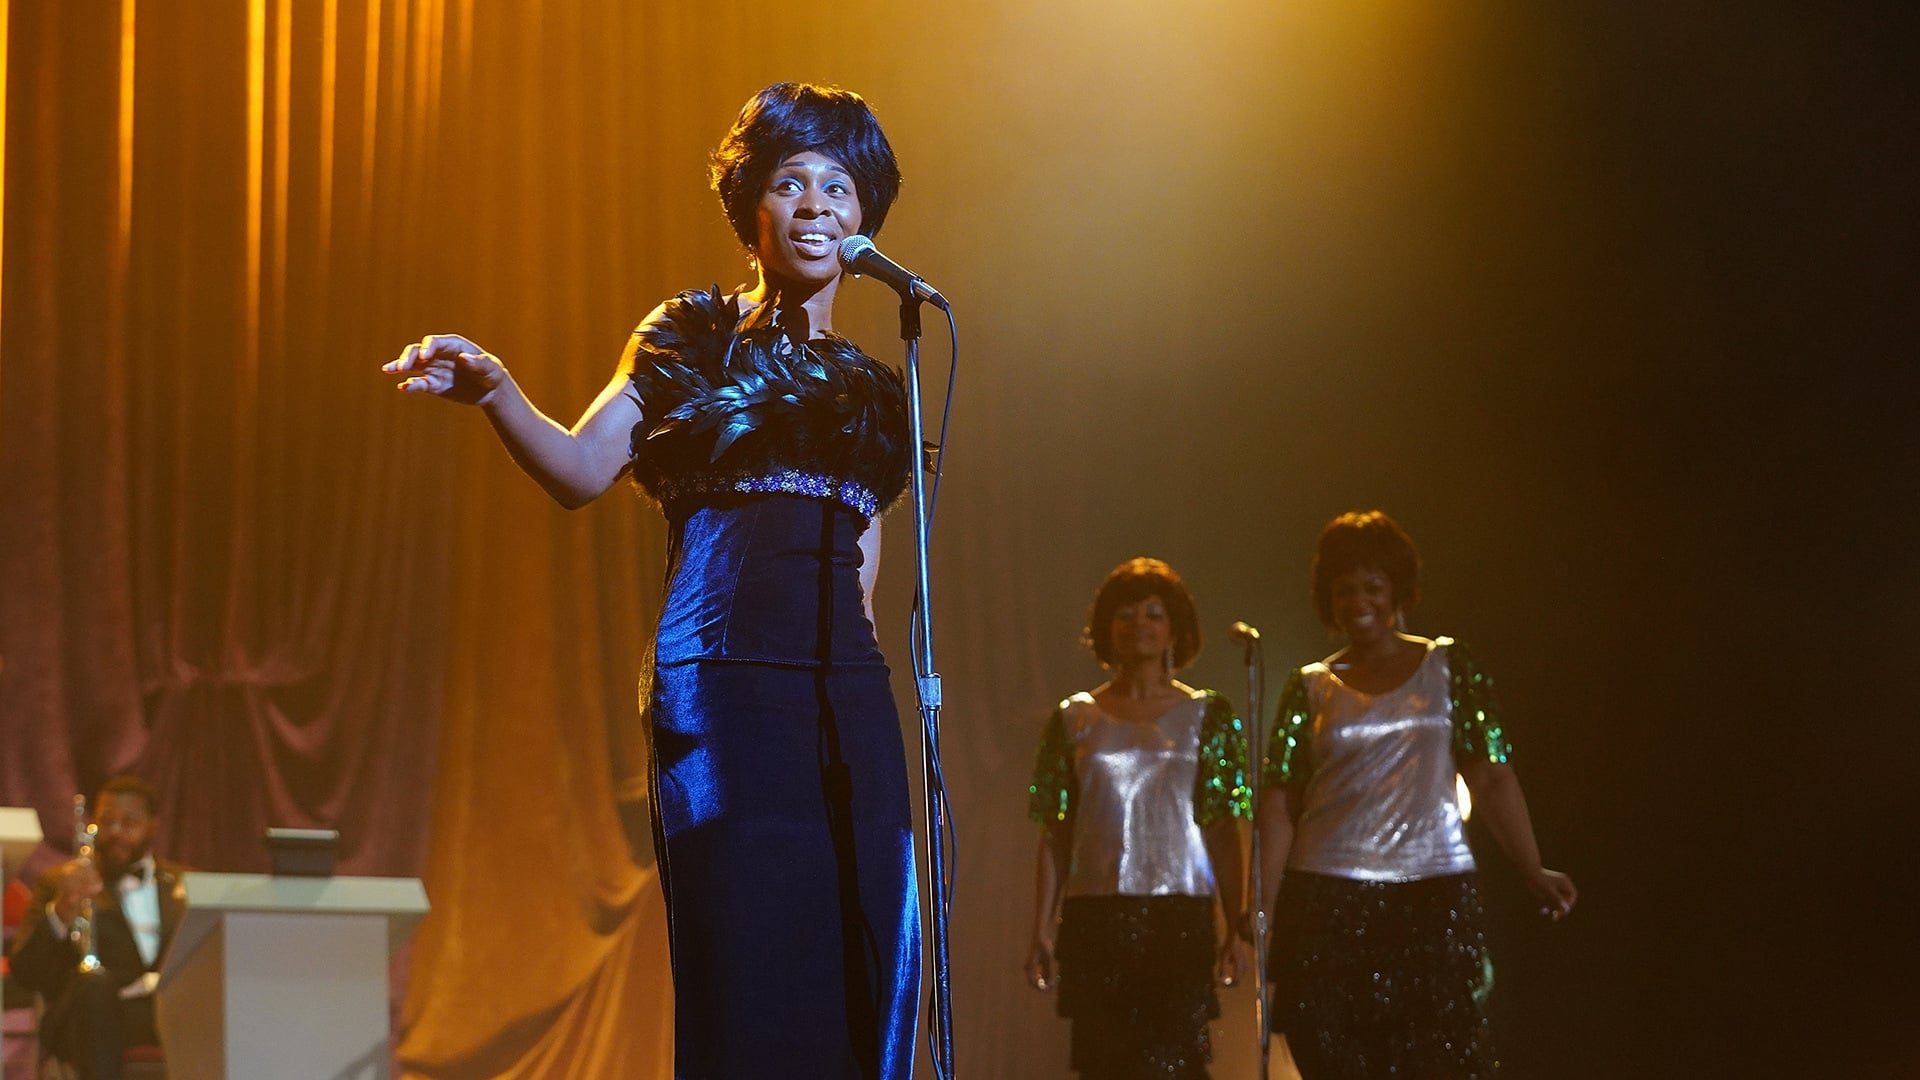 Third season Genius about Aretha Franklin to premiere in March